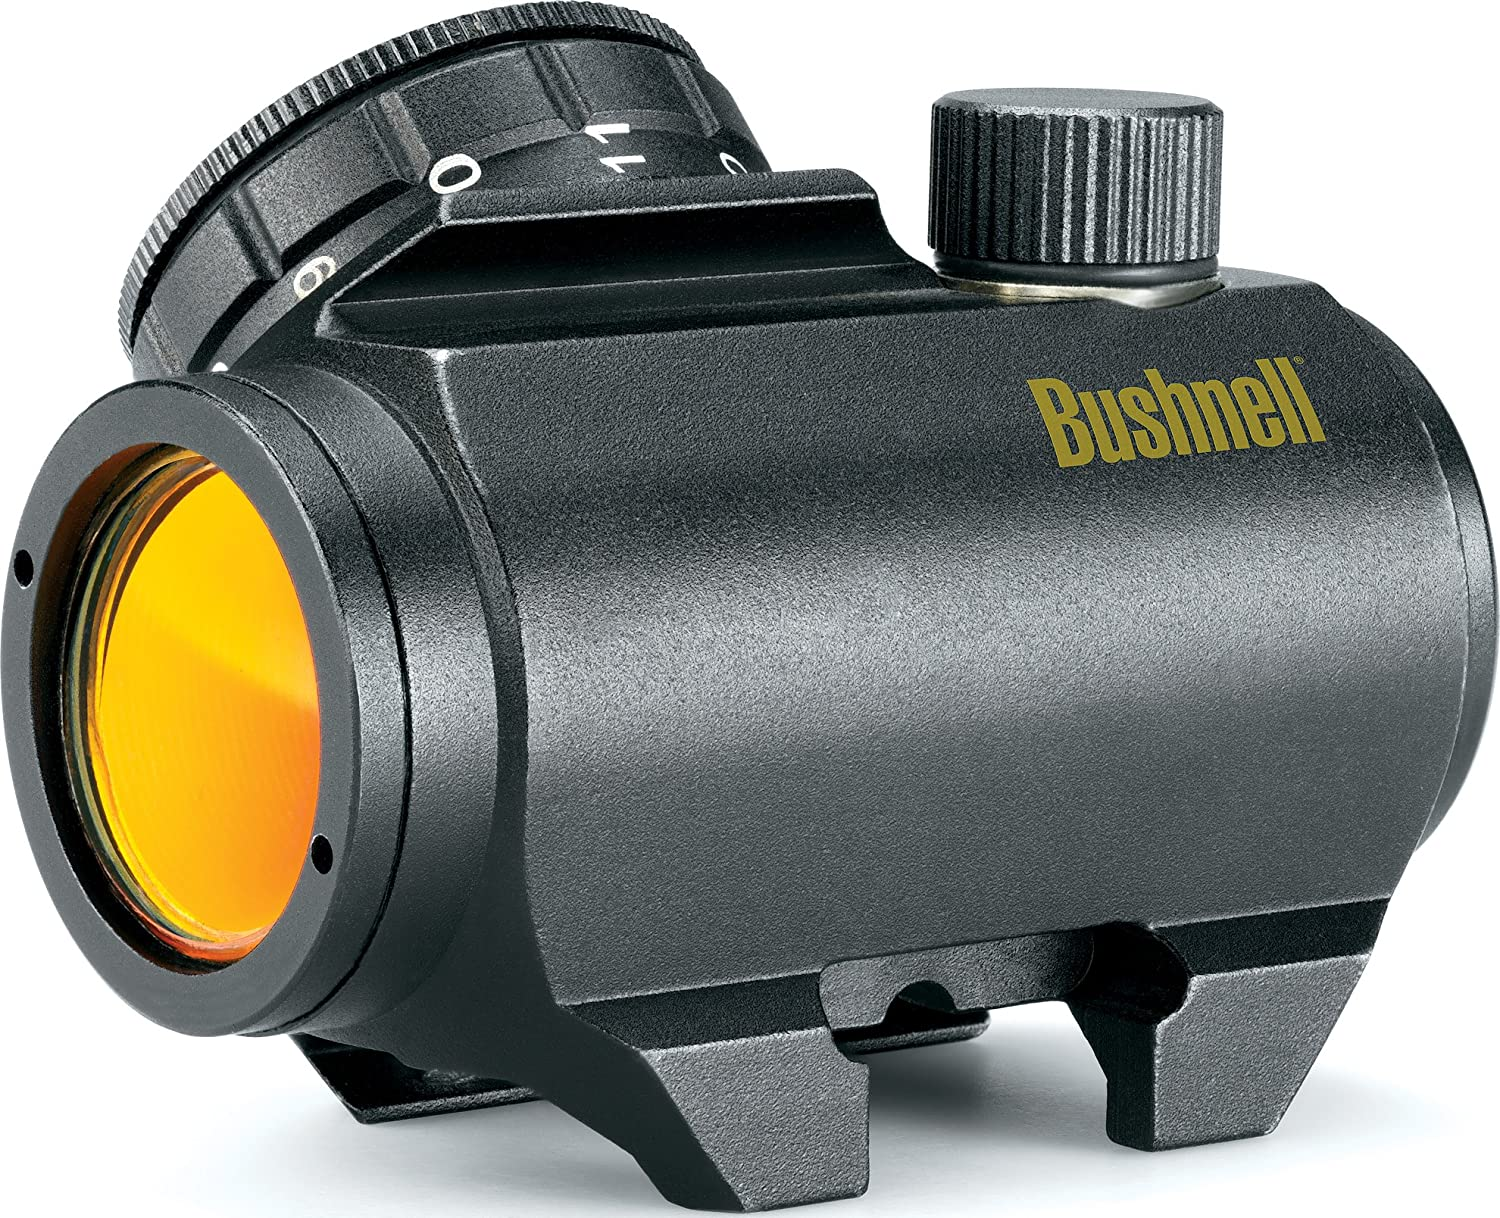 Top 10 Best Red Dot Sight Reviews in 2020 & Buying Guide 1